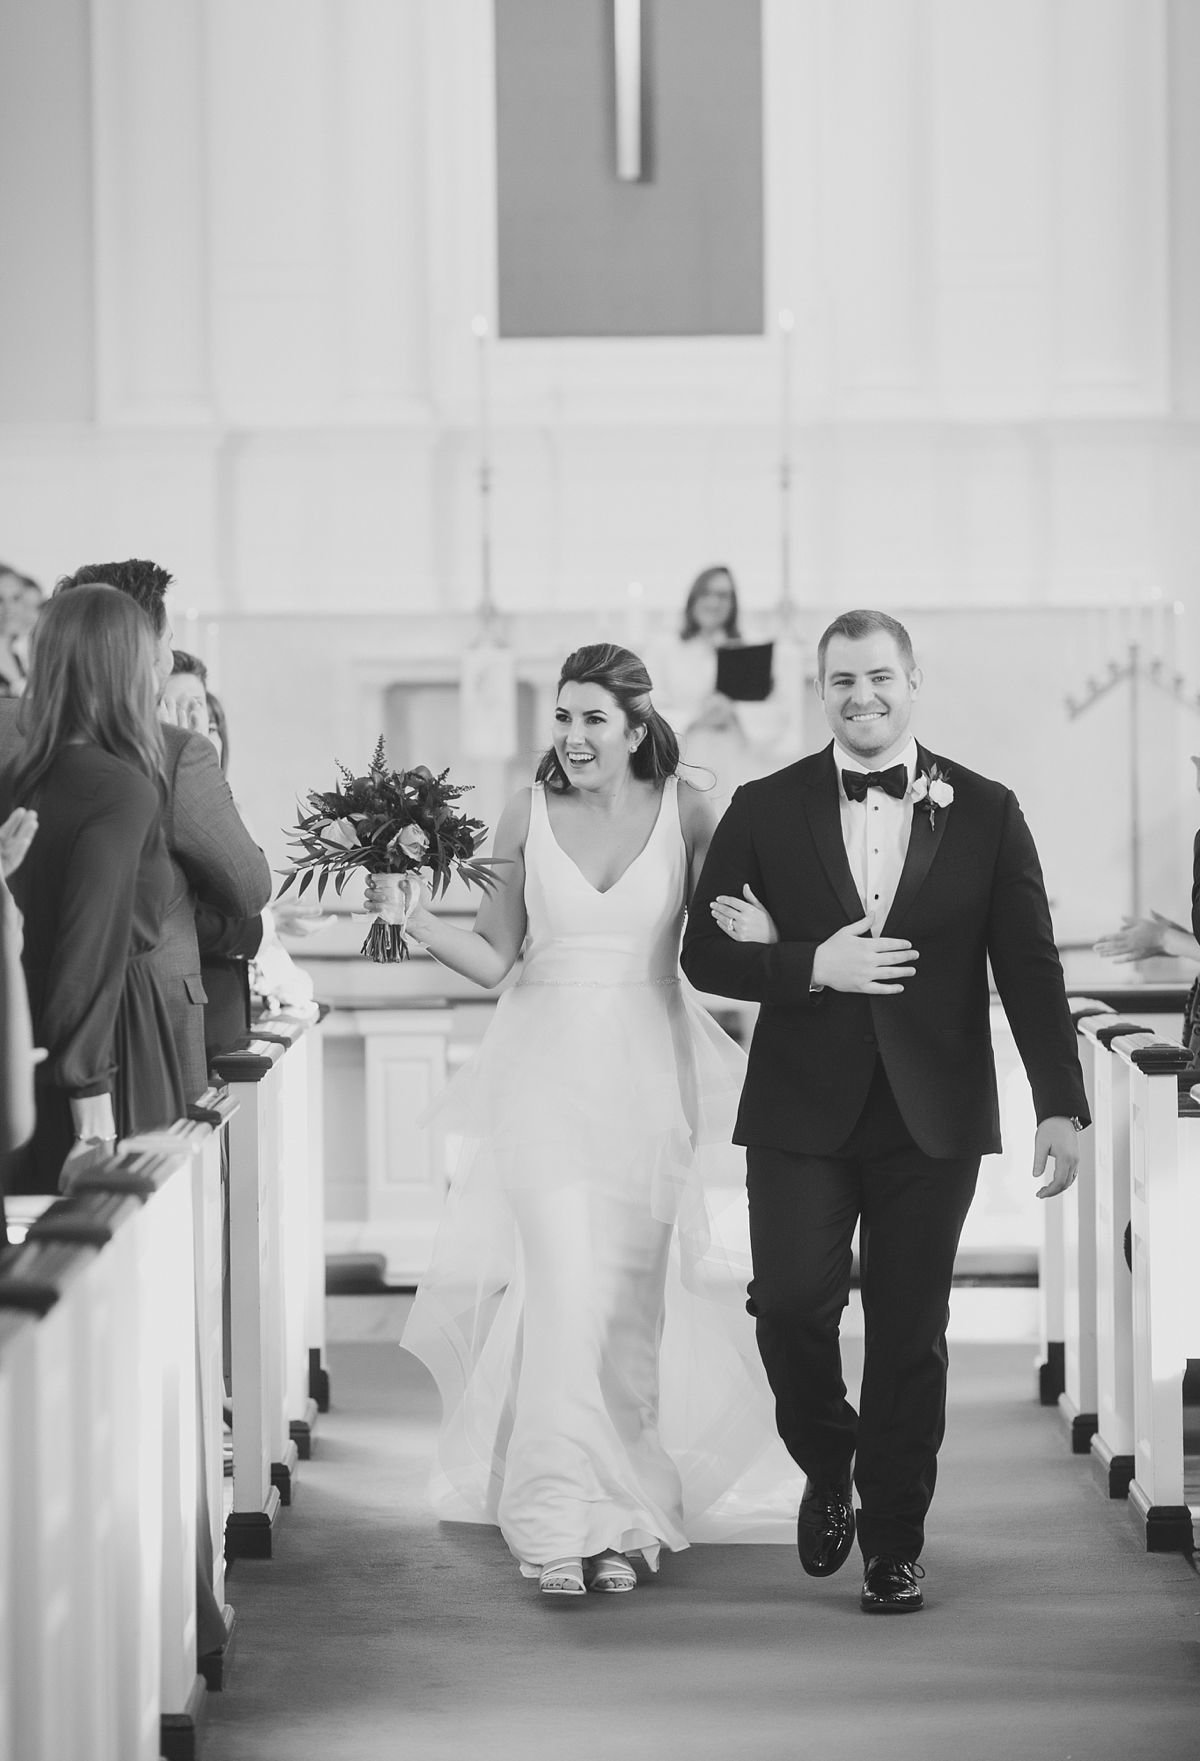 WindowsOnWashingtonWedding_AlexisColton_CatherineRhodesPhotography1614-Edit